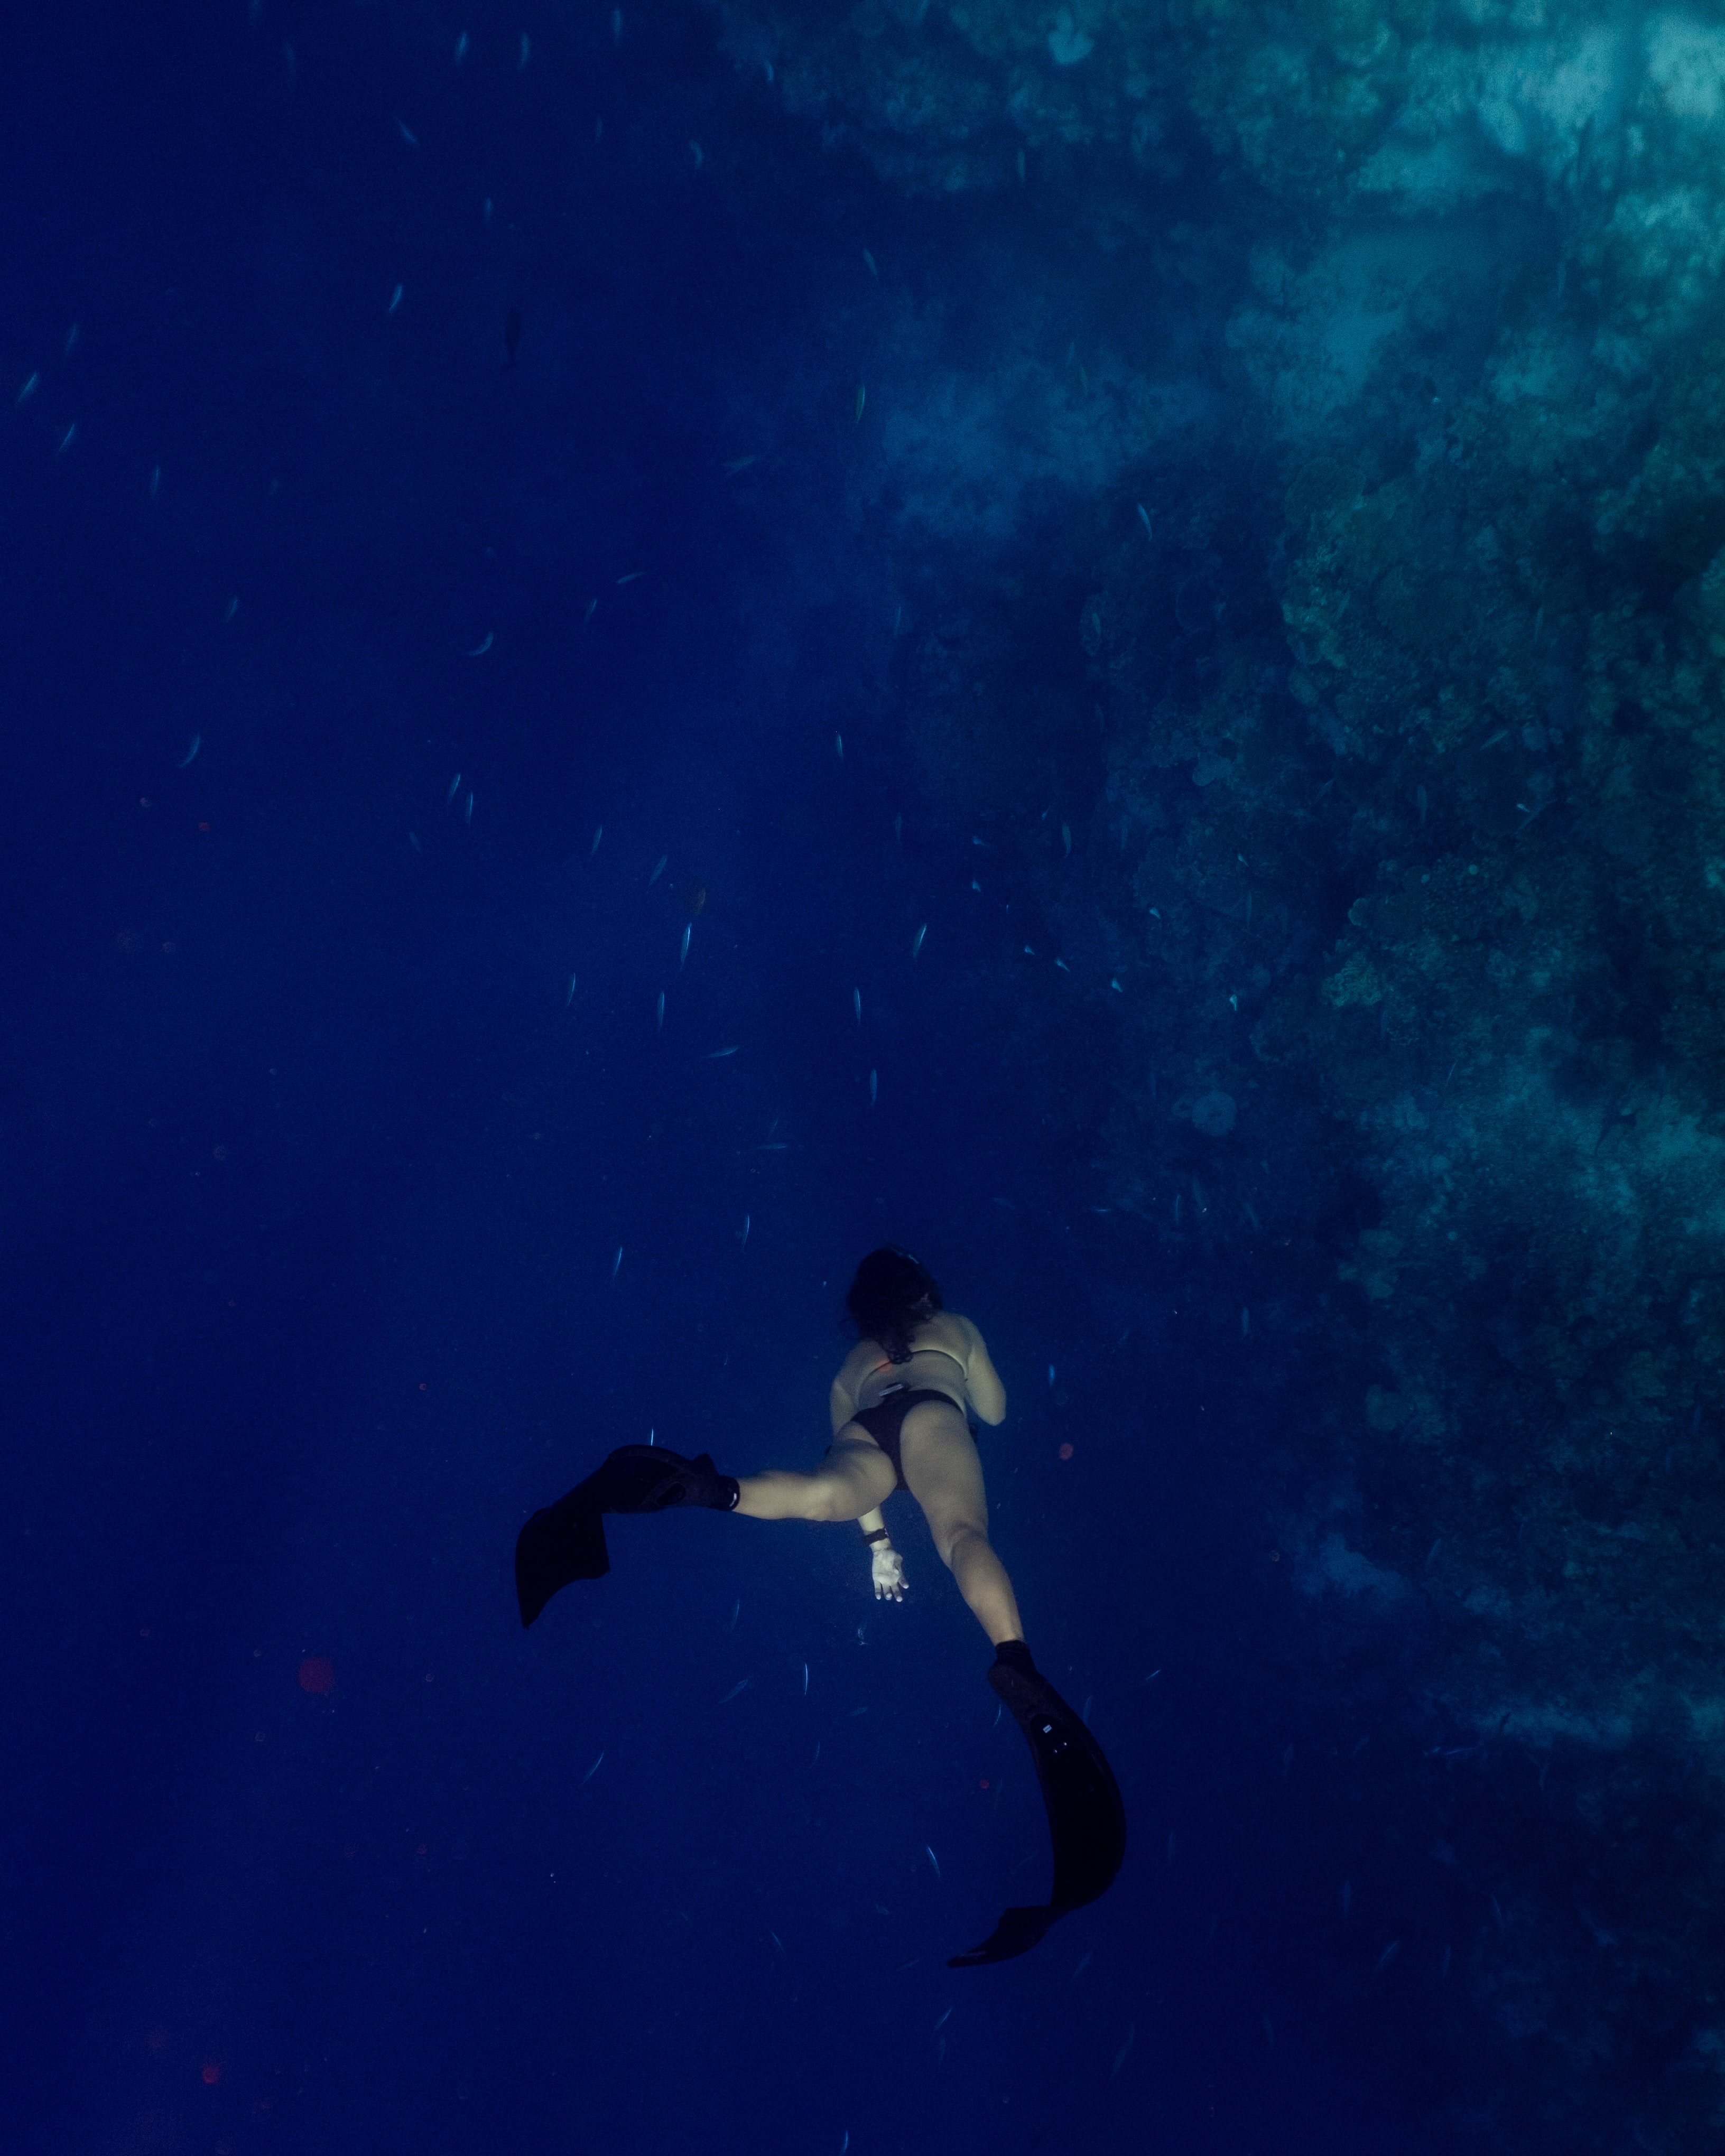 underwater photography of person